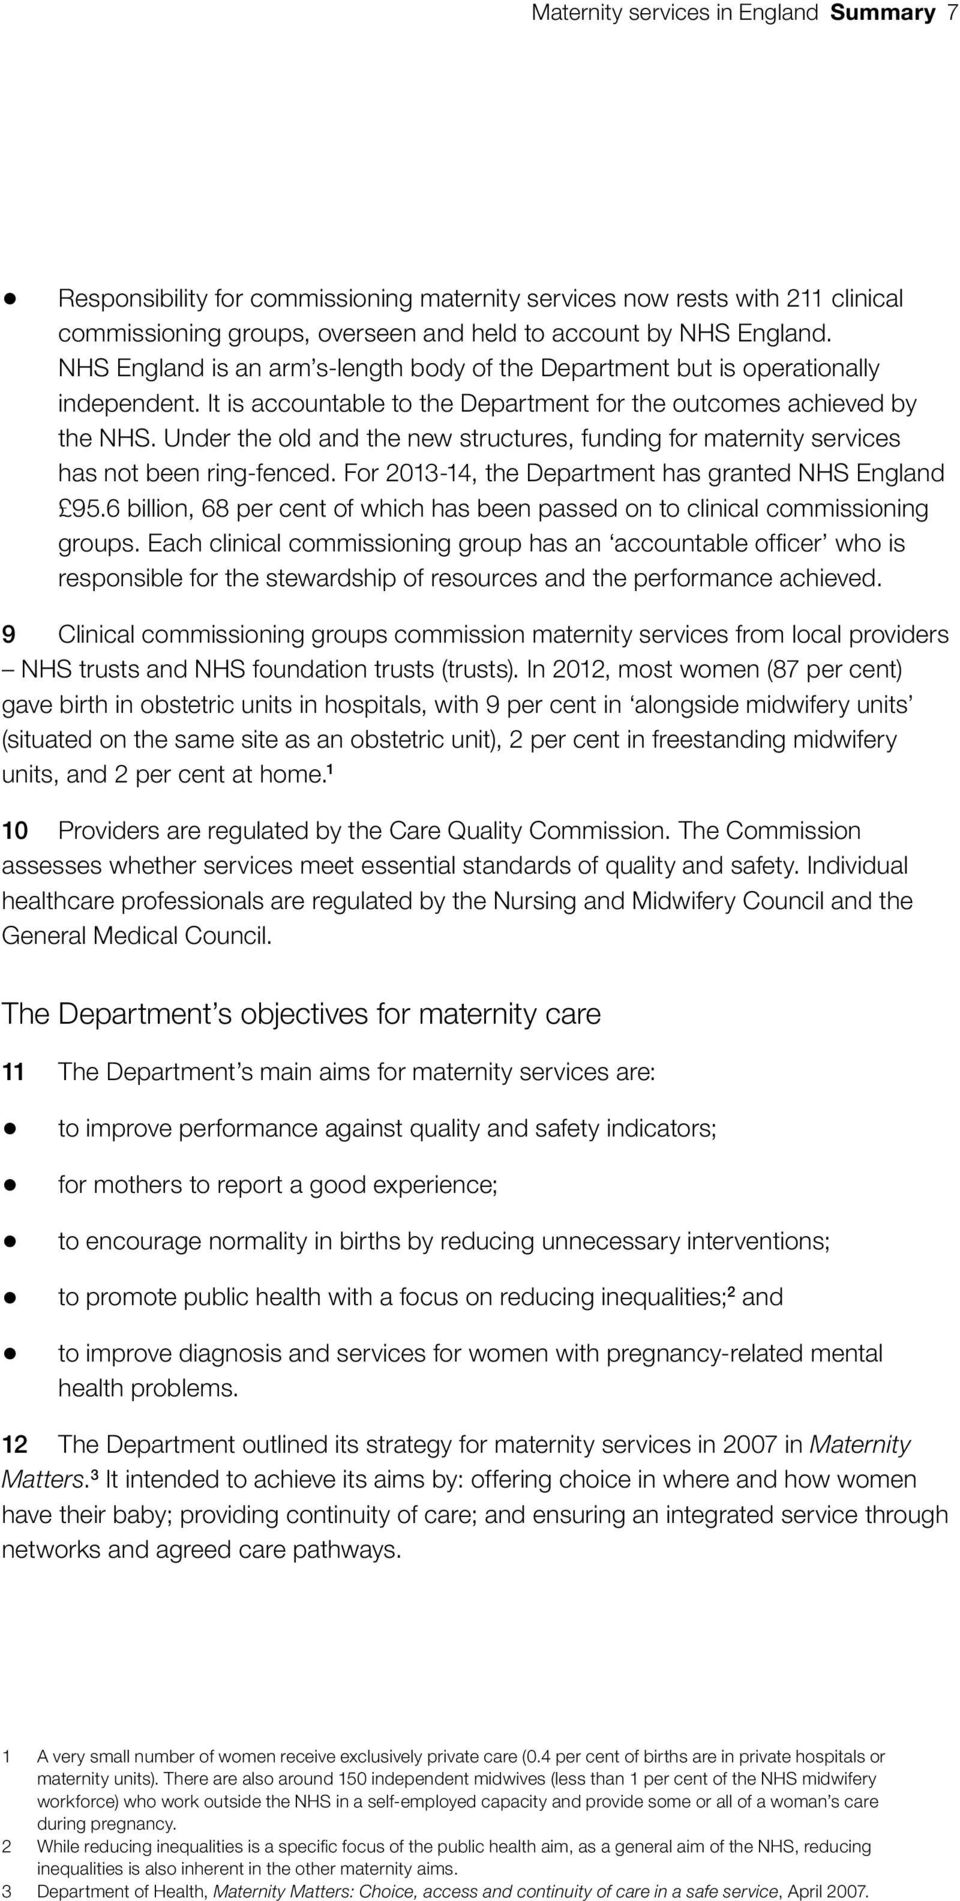 Under the old and the new structures, funding for maternity services has not been ring-fenced. For 2013-14, the Department has granted NHS England 95.